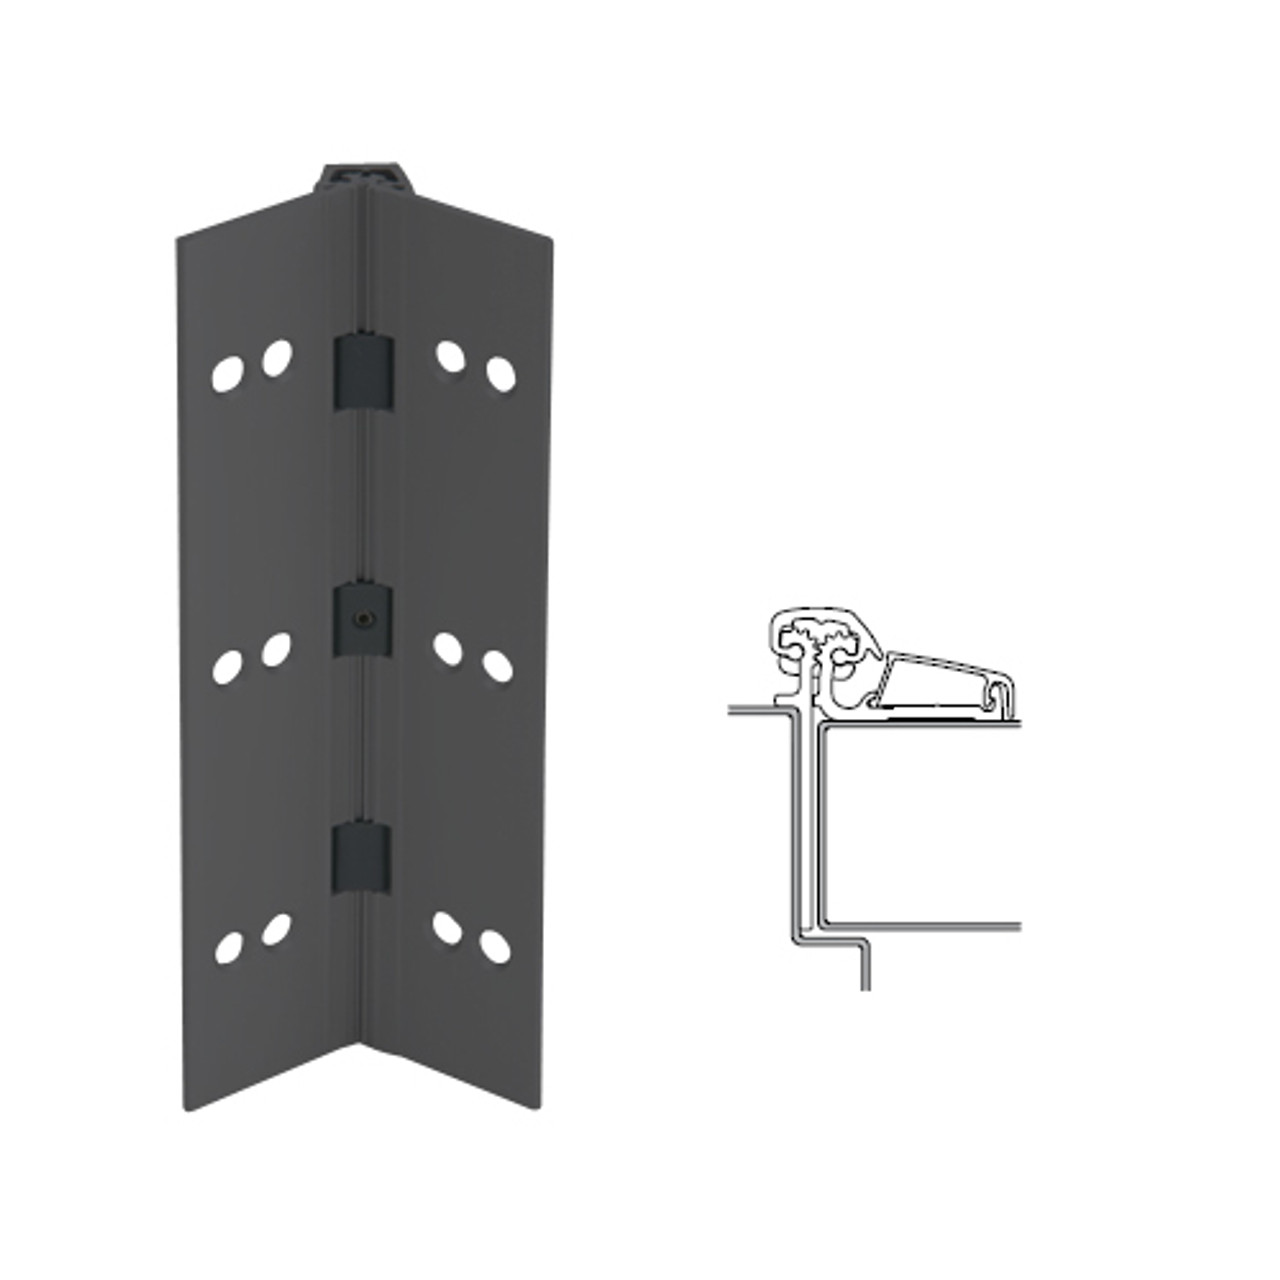 054XY-315AN-83-TFWD IVES Adjustable Half Surface Continuous Geared Hinges with Thread Forming Screws in Anodized Black